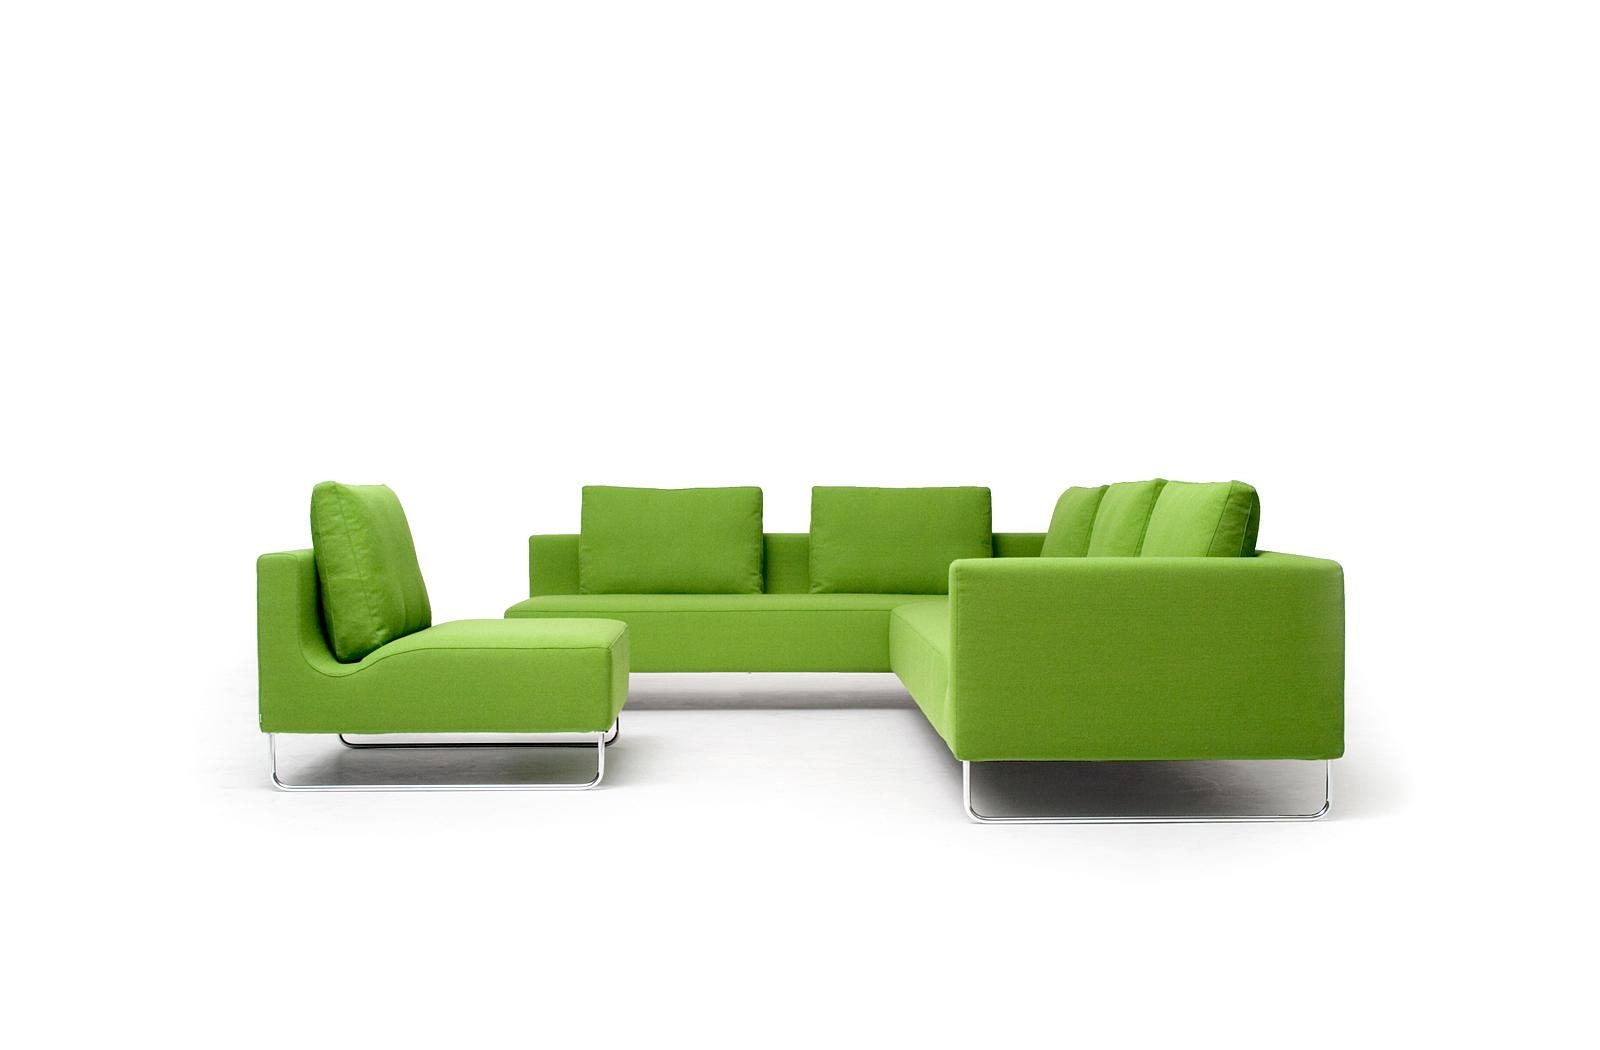 Canyon | Bensen pertaining to Bensen Sofas